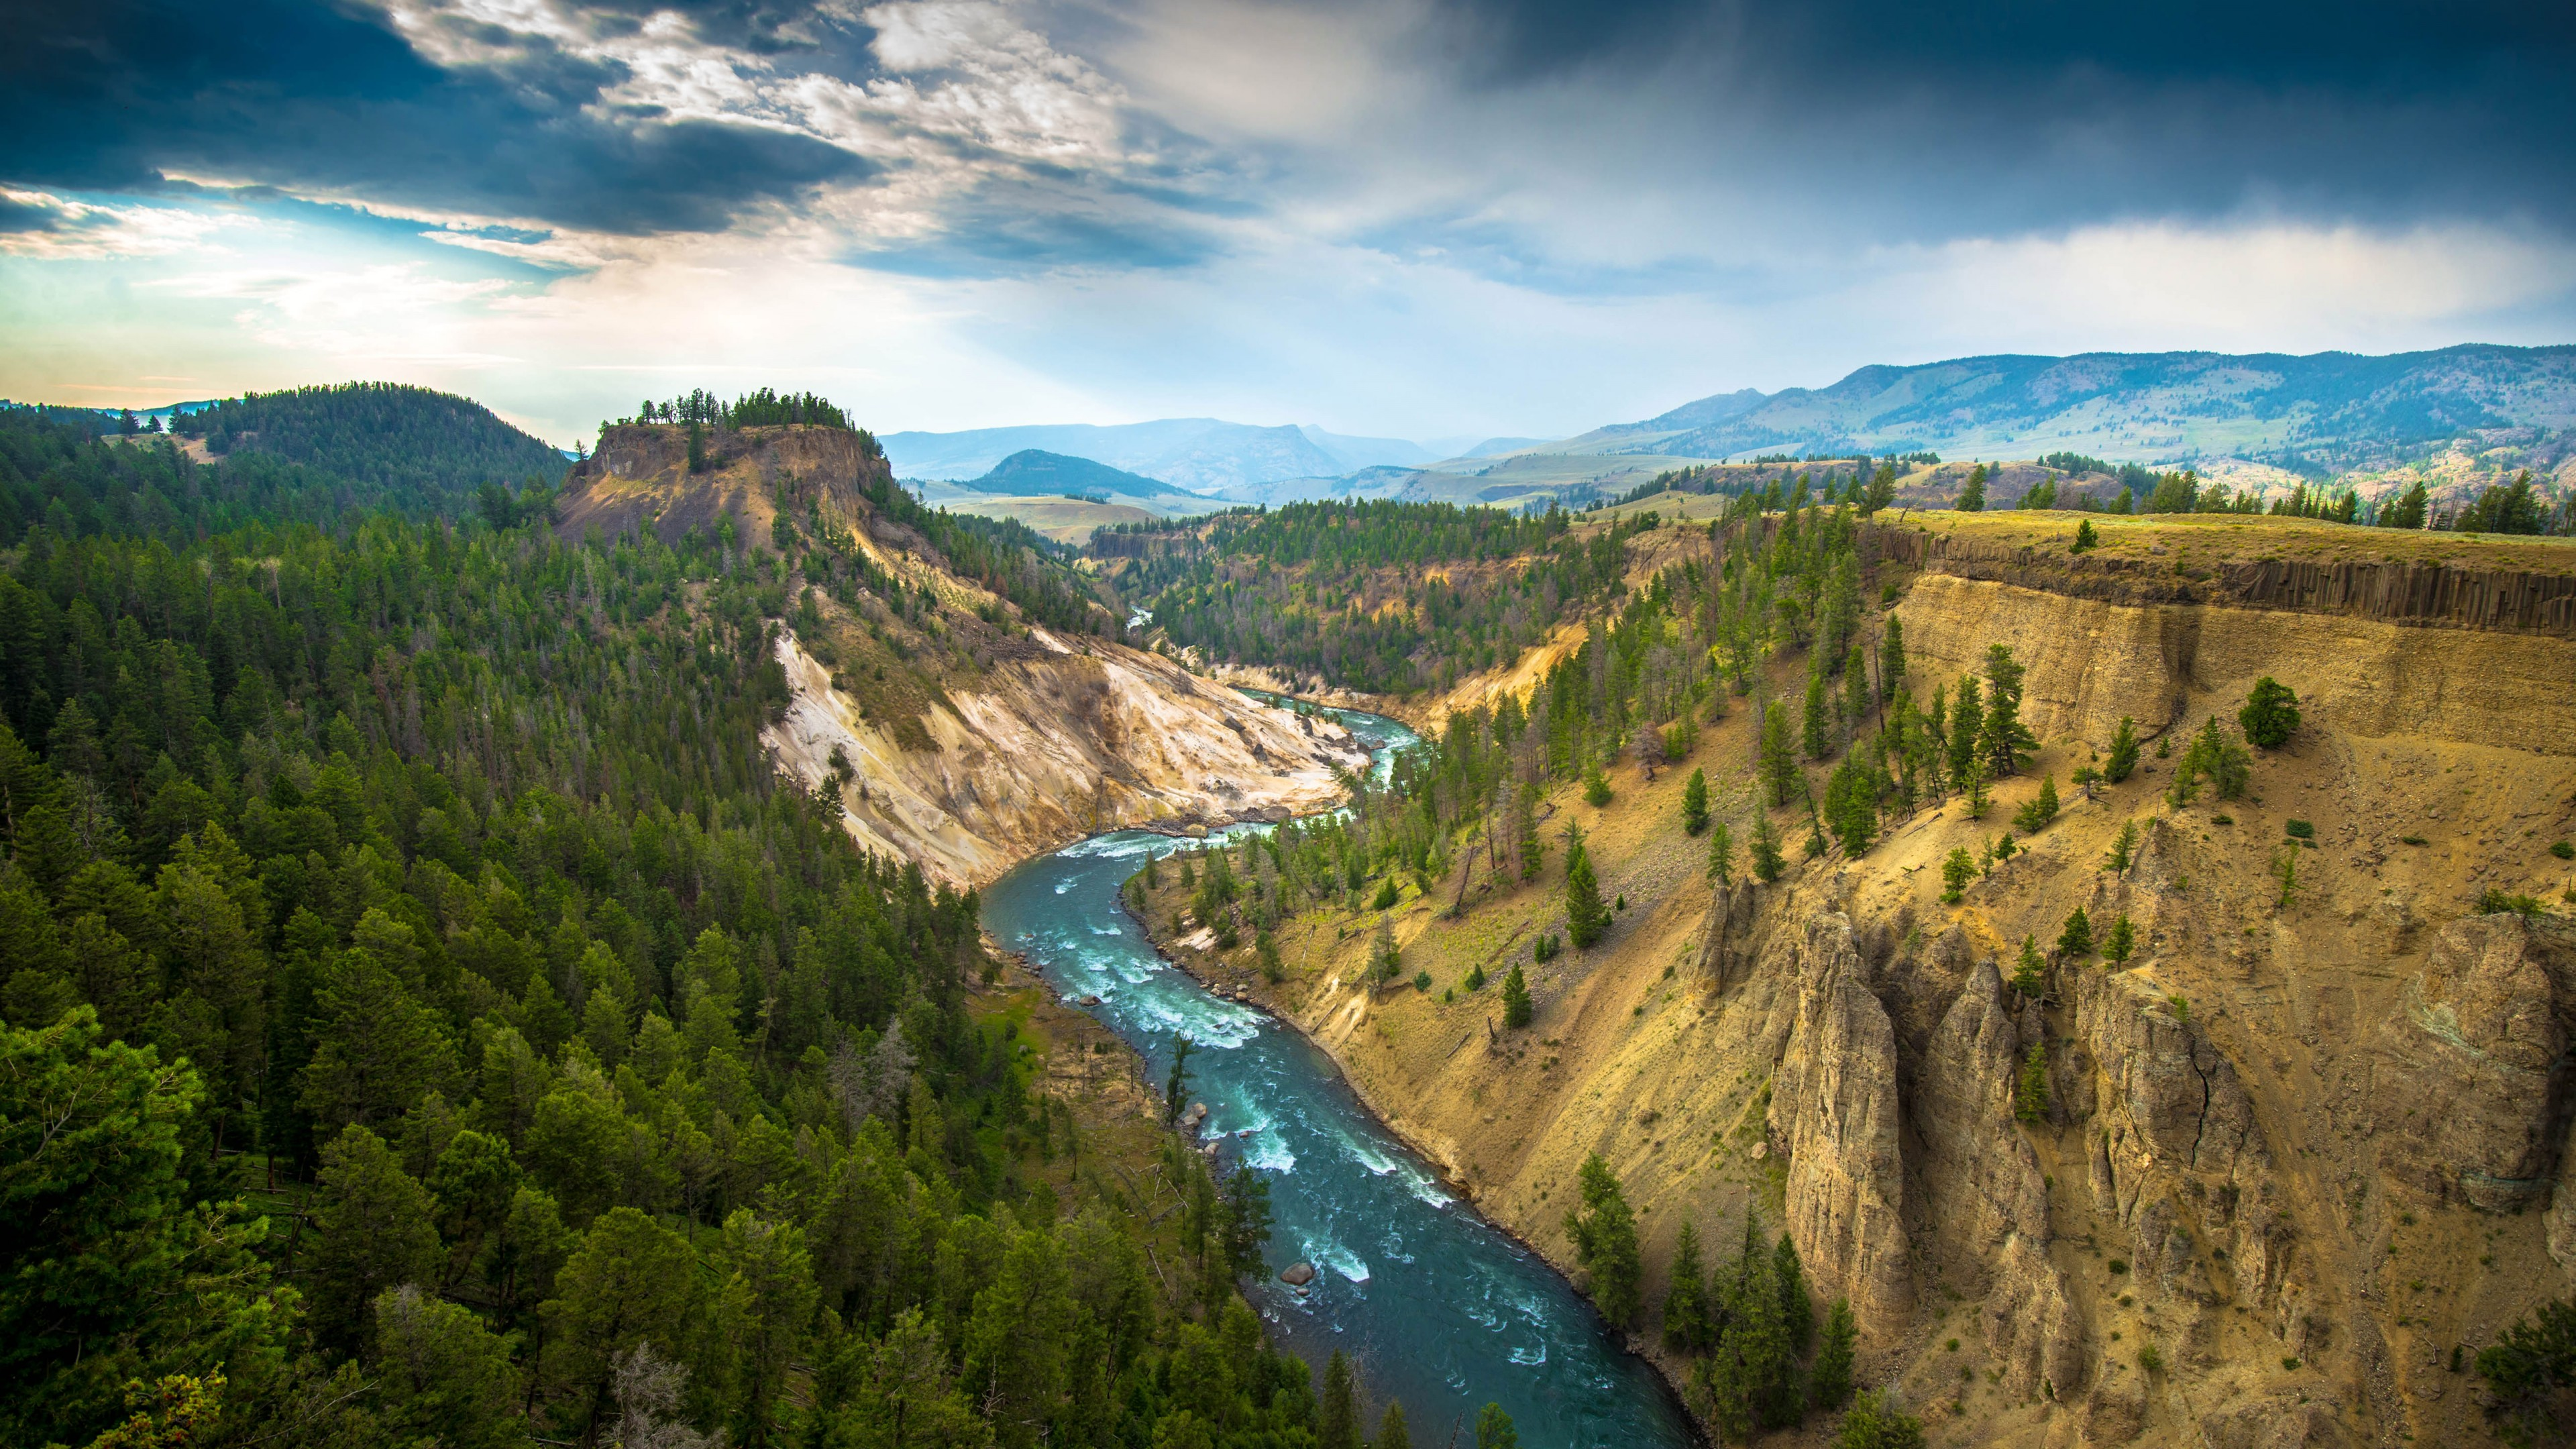 The River Grand Canyon of Yellowstone National Park USA wallpaper